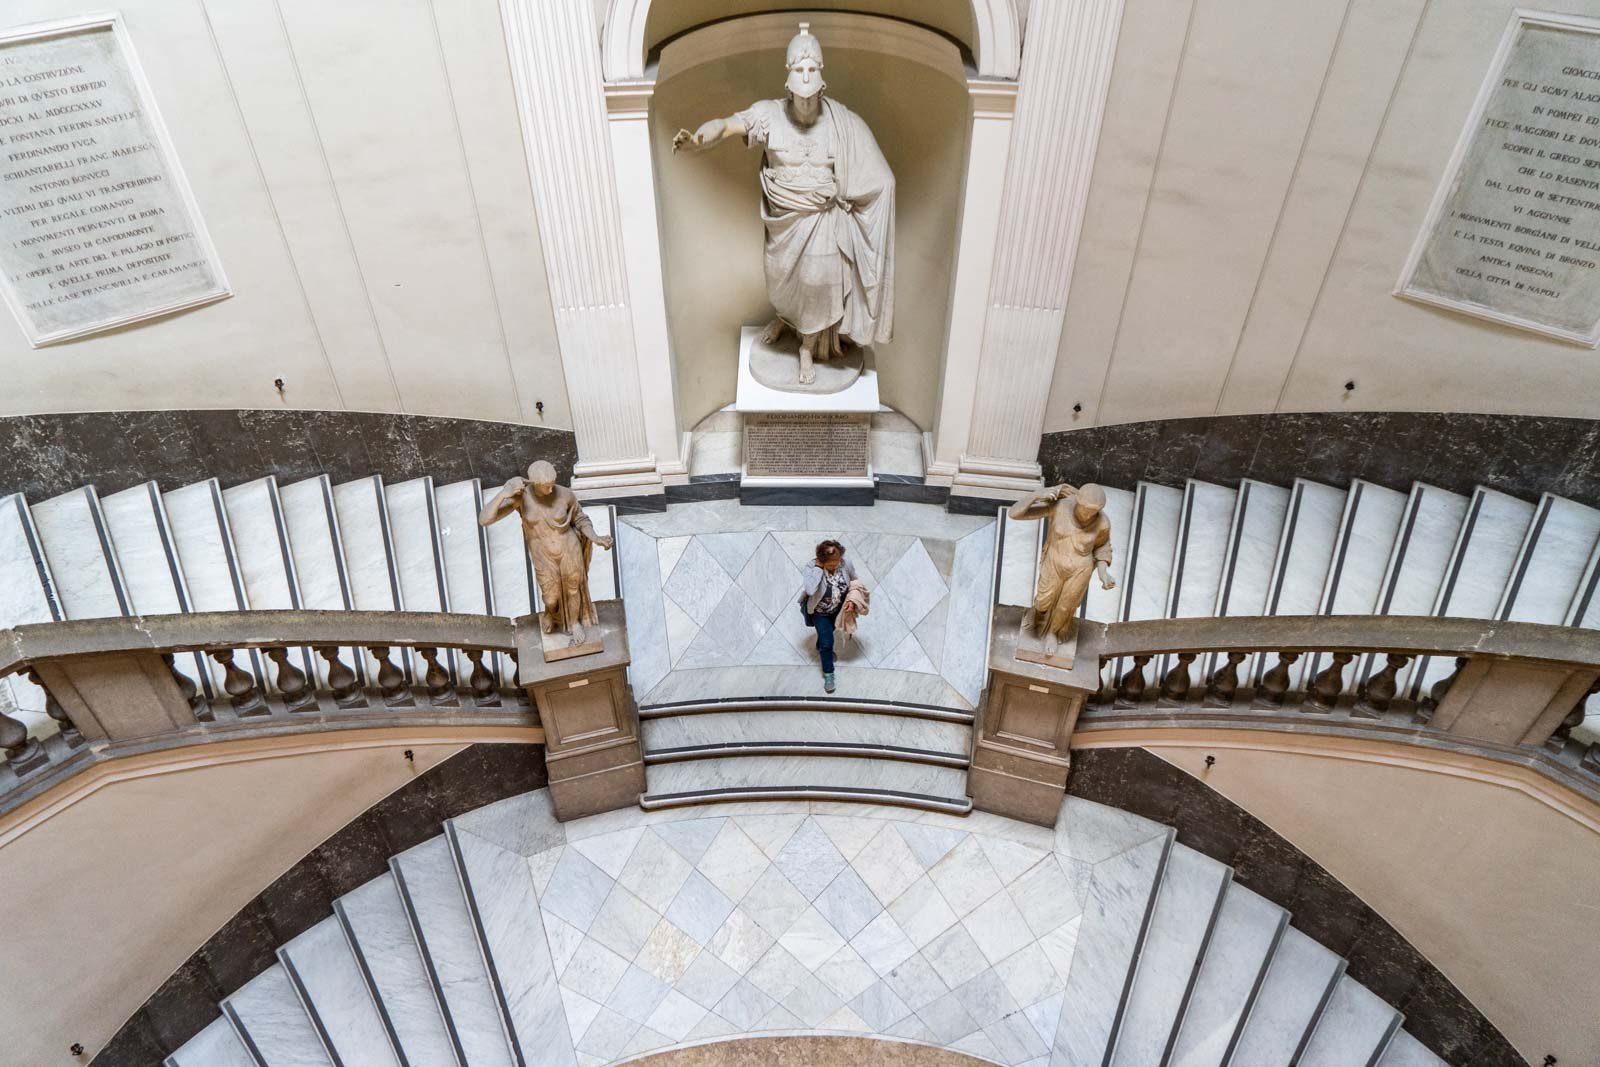 National Archaeological Museum, Naples, Italy